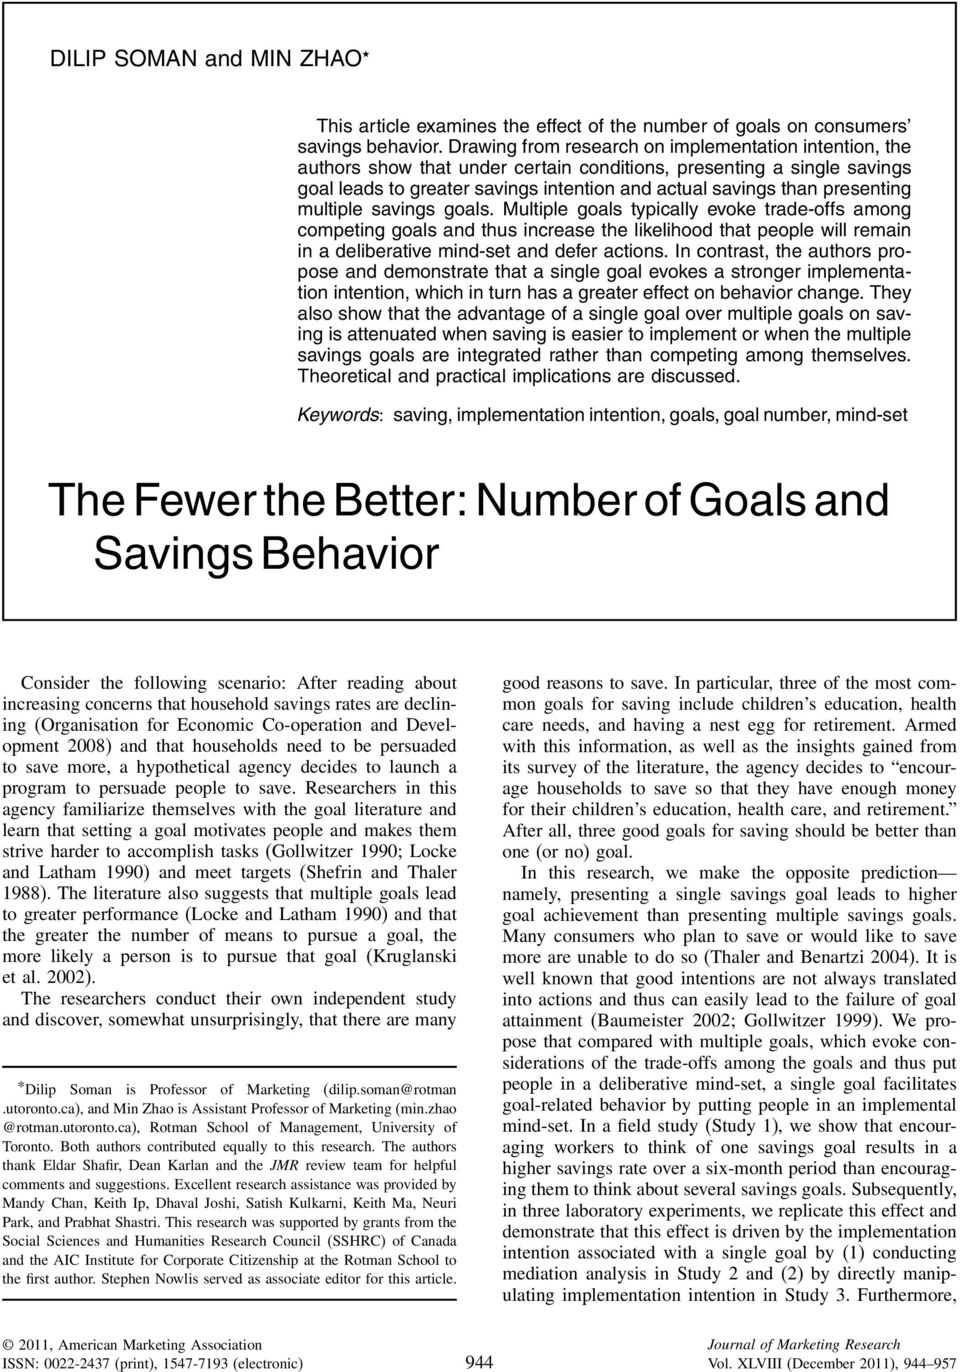 presenting multiple savings goals. goals typically evoke trade-offs among competing goals and thus increase the likelihood that people will remain in a deliberative mind-set and defer actions.